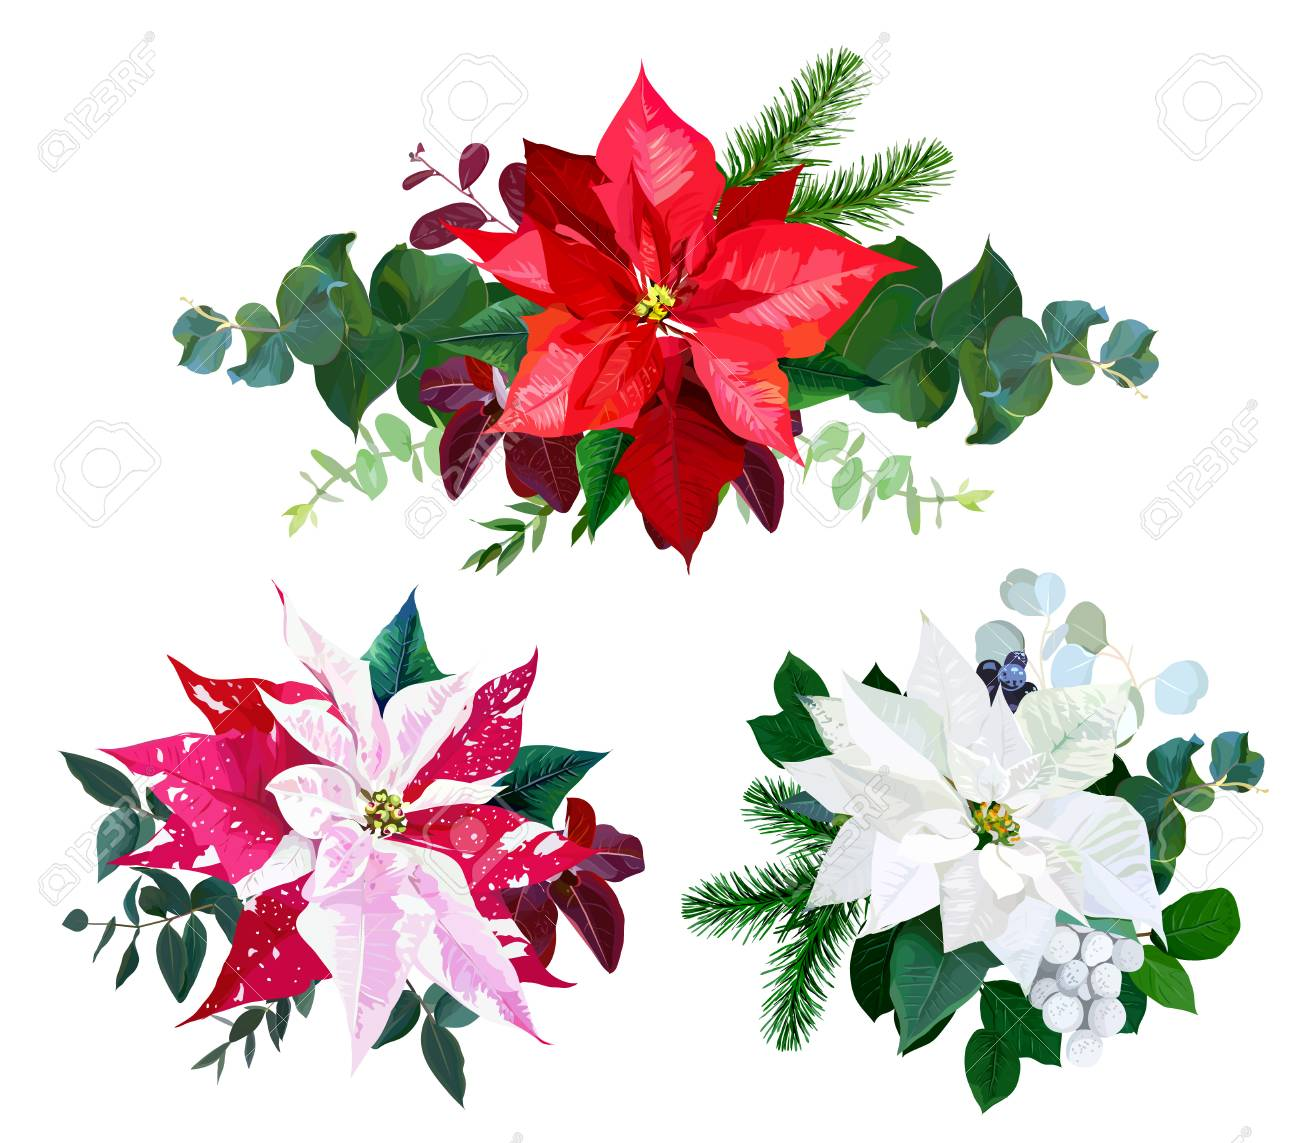 Christmas Bouquets Arranged From Red And White Poinsettia Fir